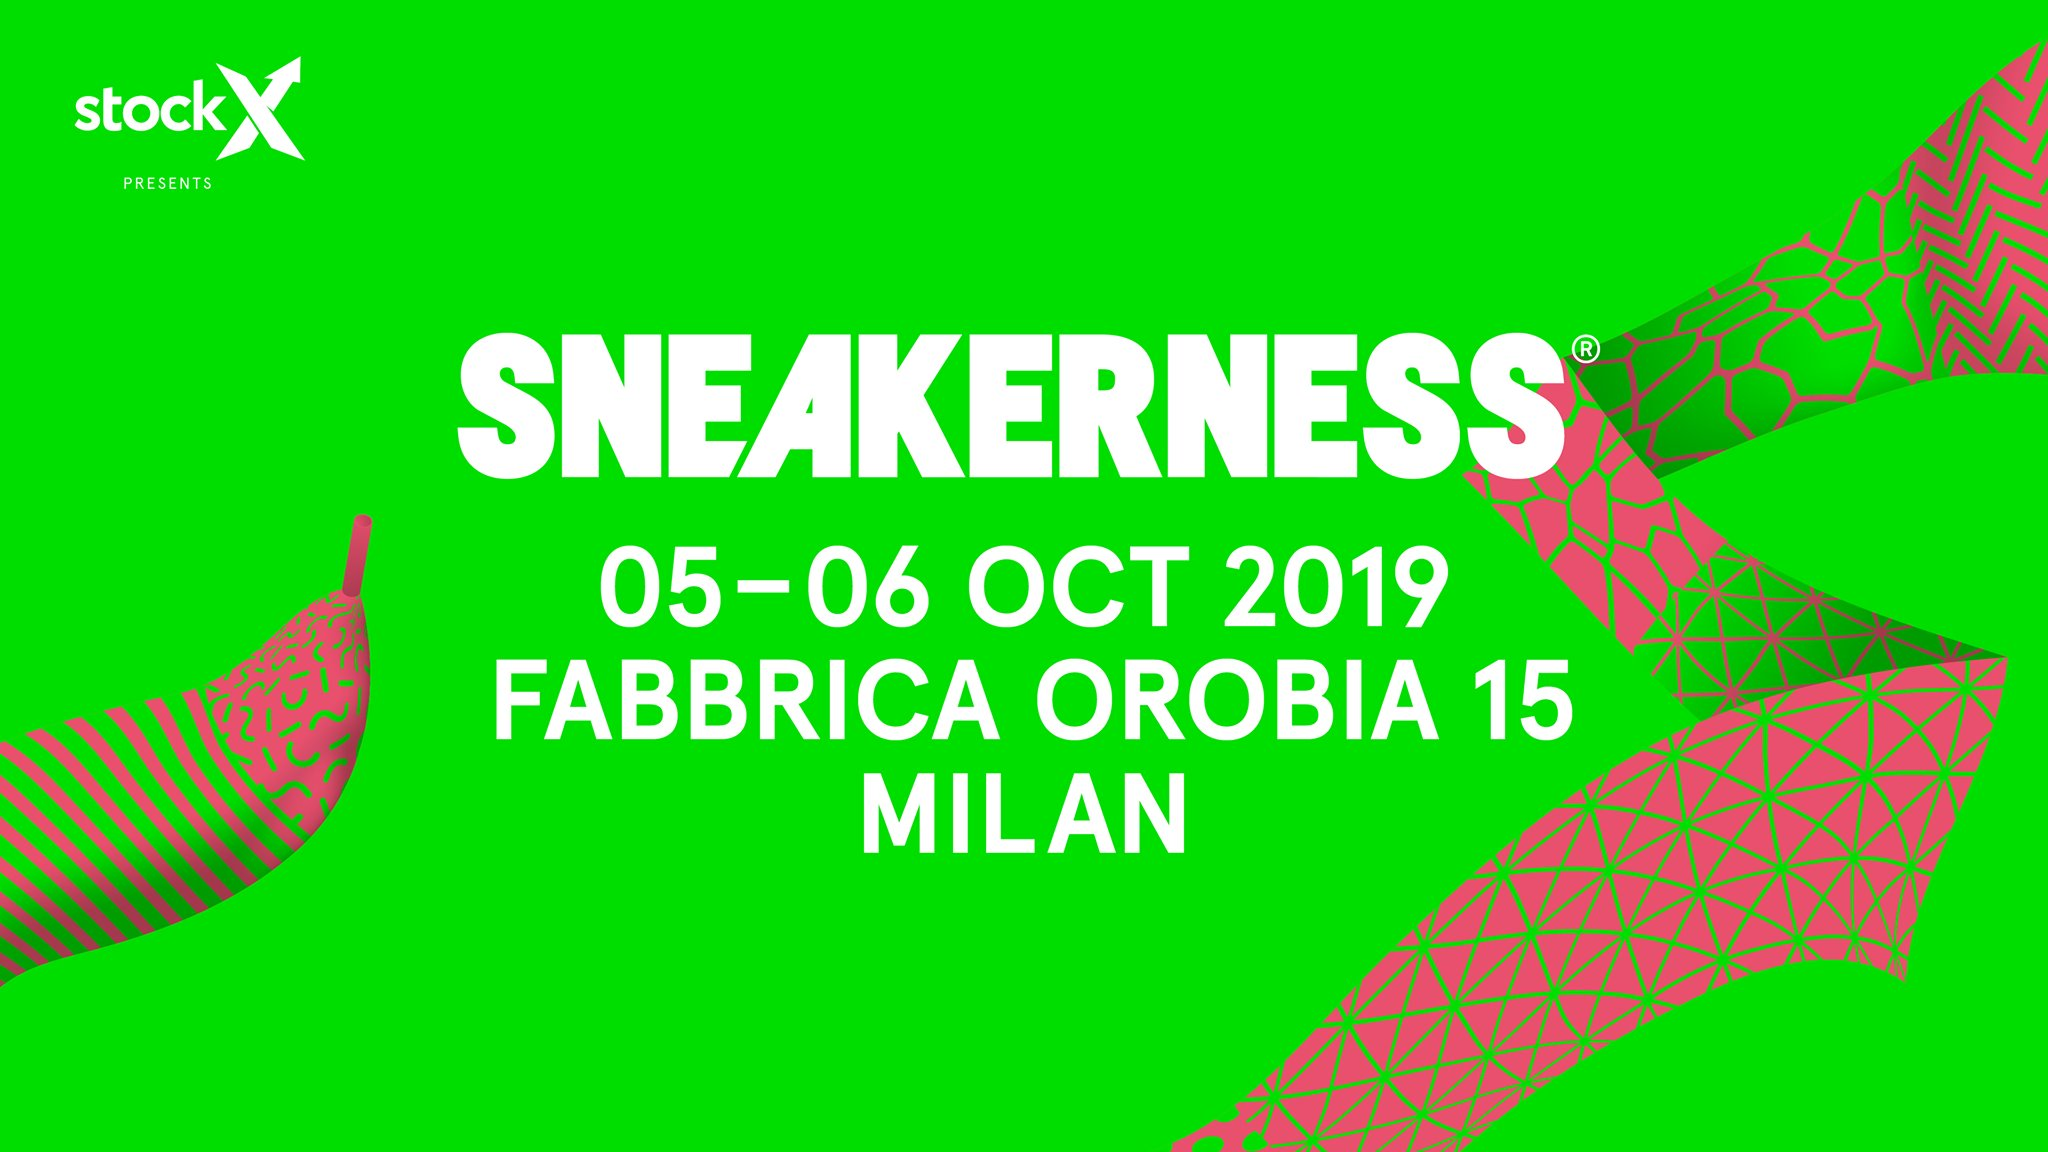 Sneakerness 2019 milano